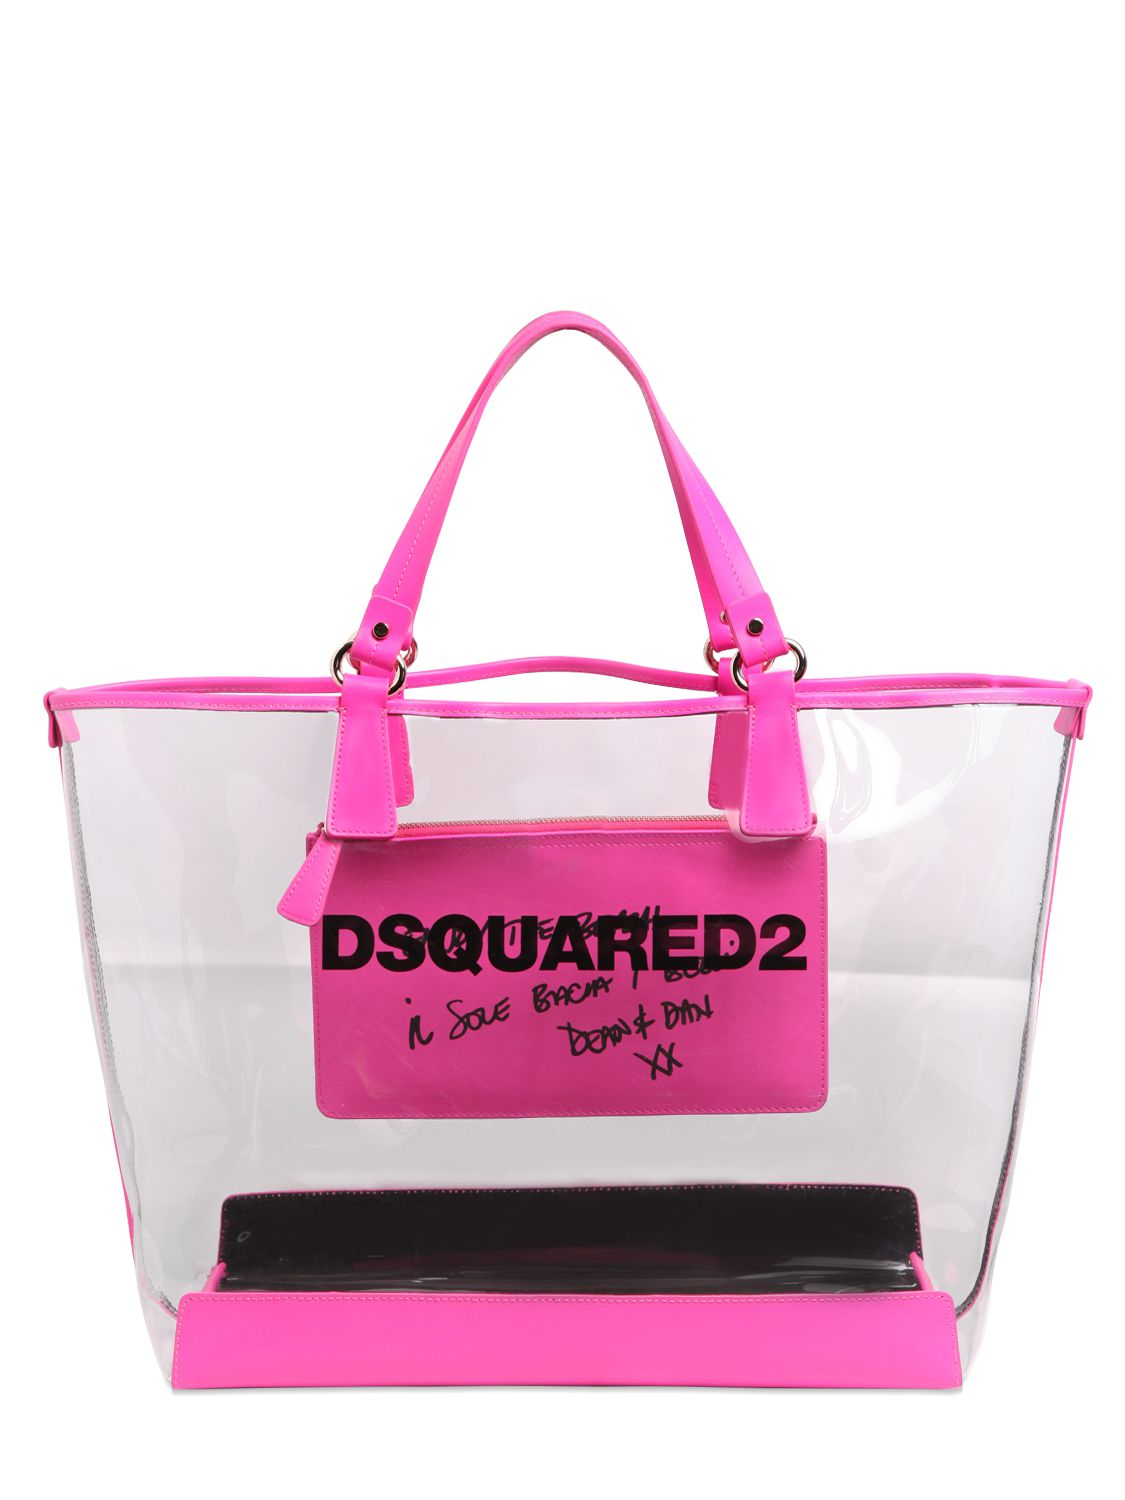 Dsquared² Logo Printed Pvc Beach Tote Bag in Purple | Lyst